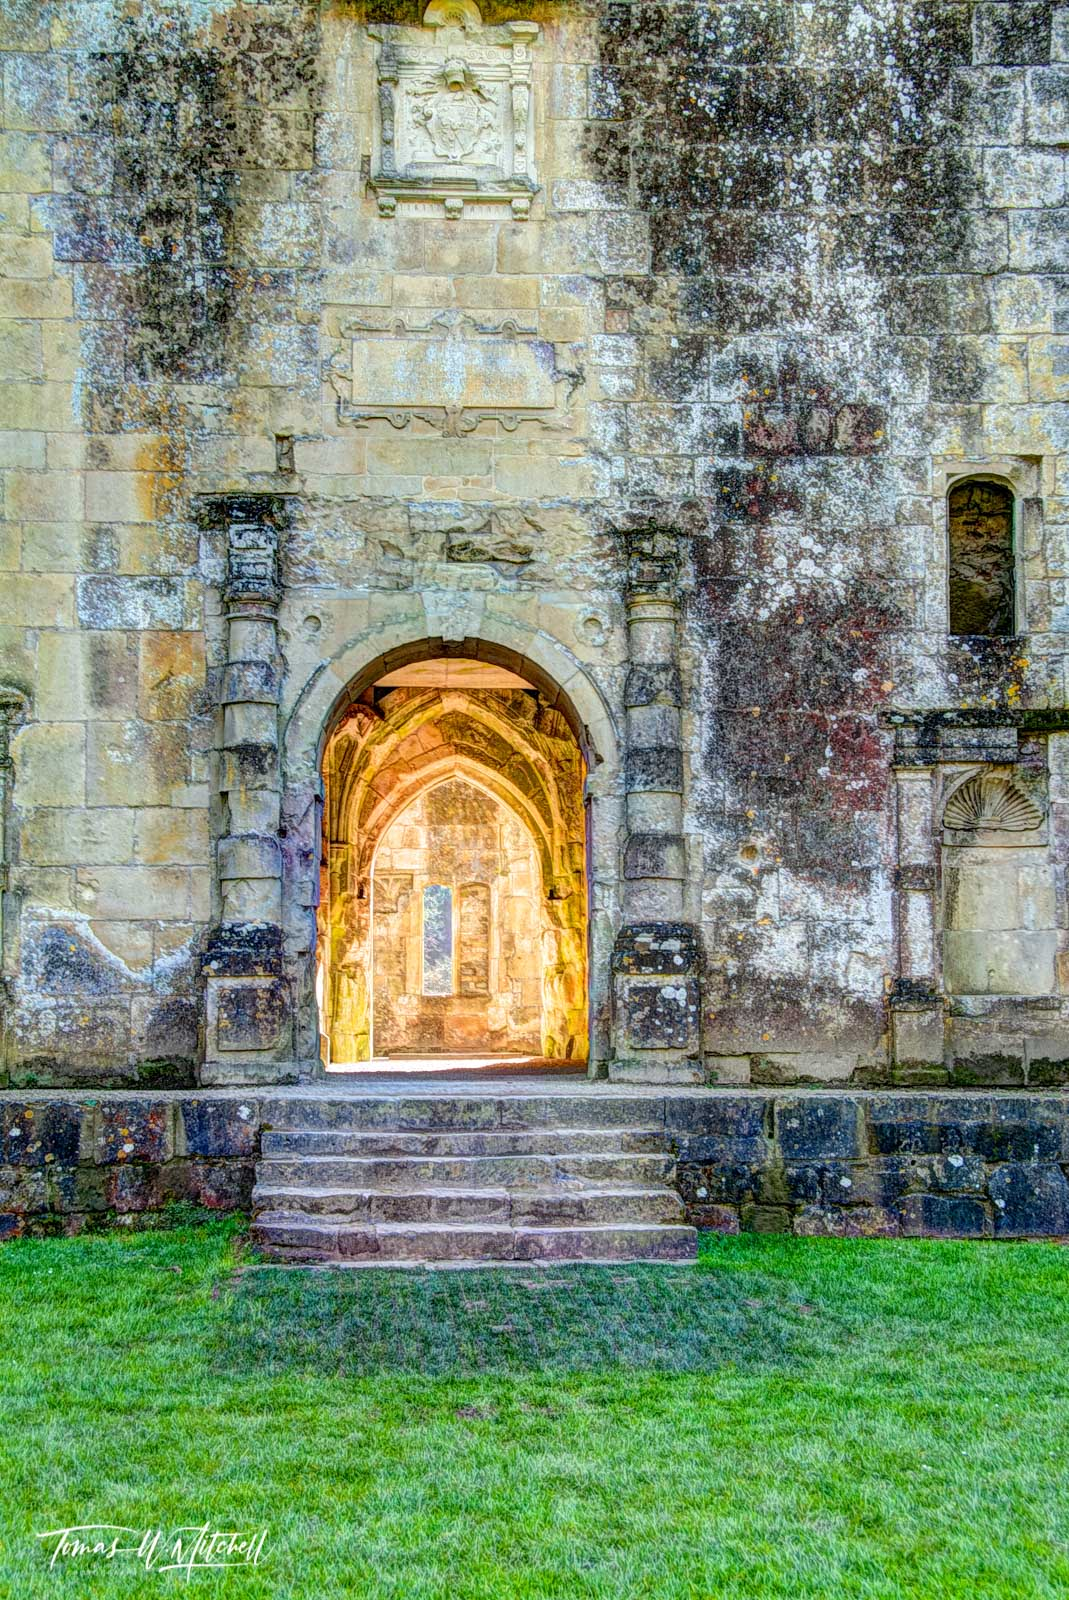 limited edition, museum grade, fine art, prints, photograph, old, wardour castle, england, doorway, robin hood, prince of thieves, castle, sun, photo